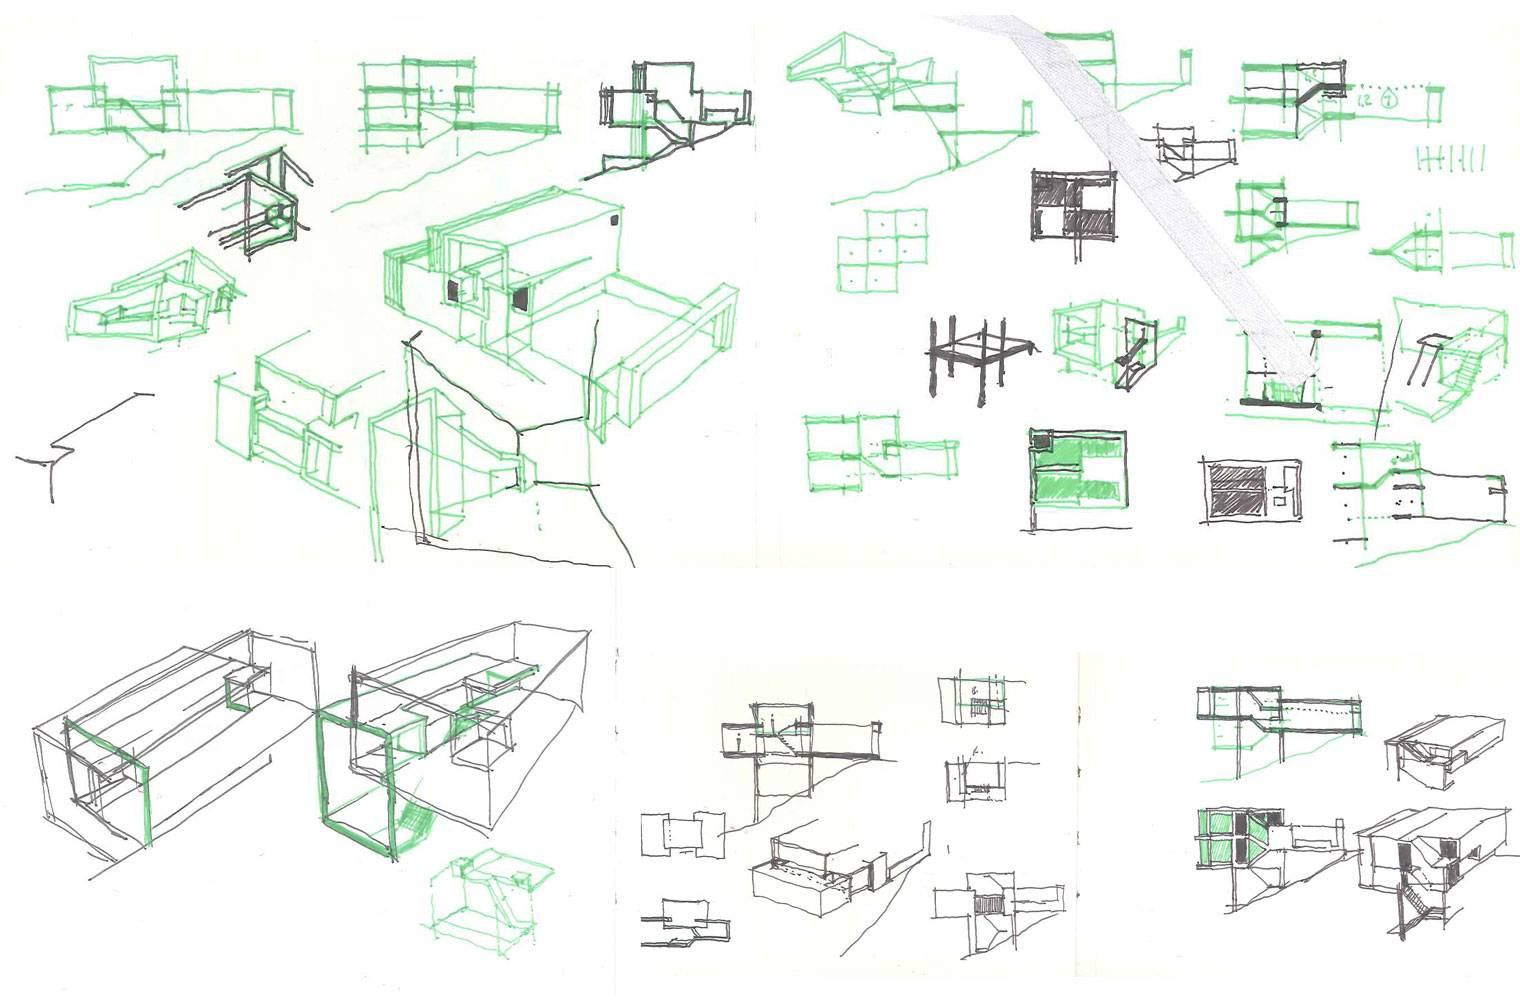 House Rese - Concept Sketches